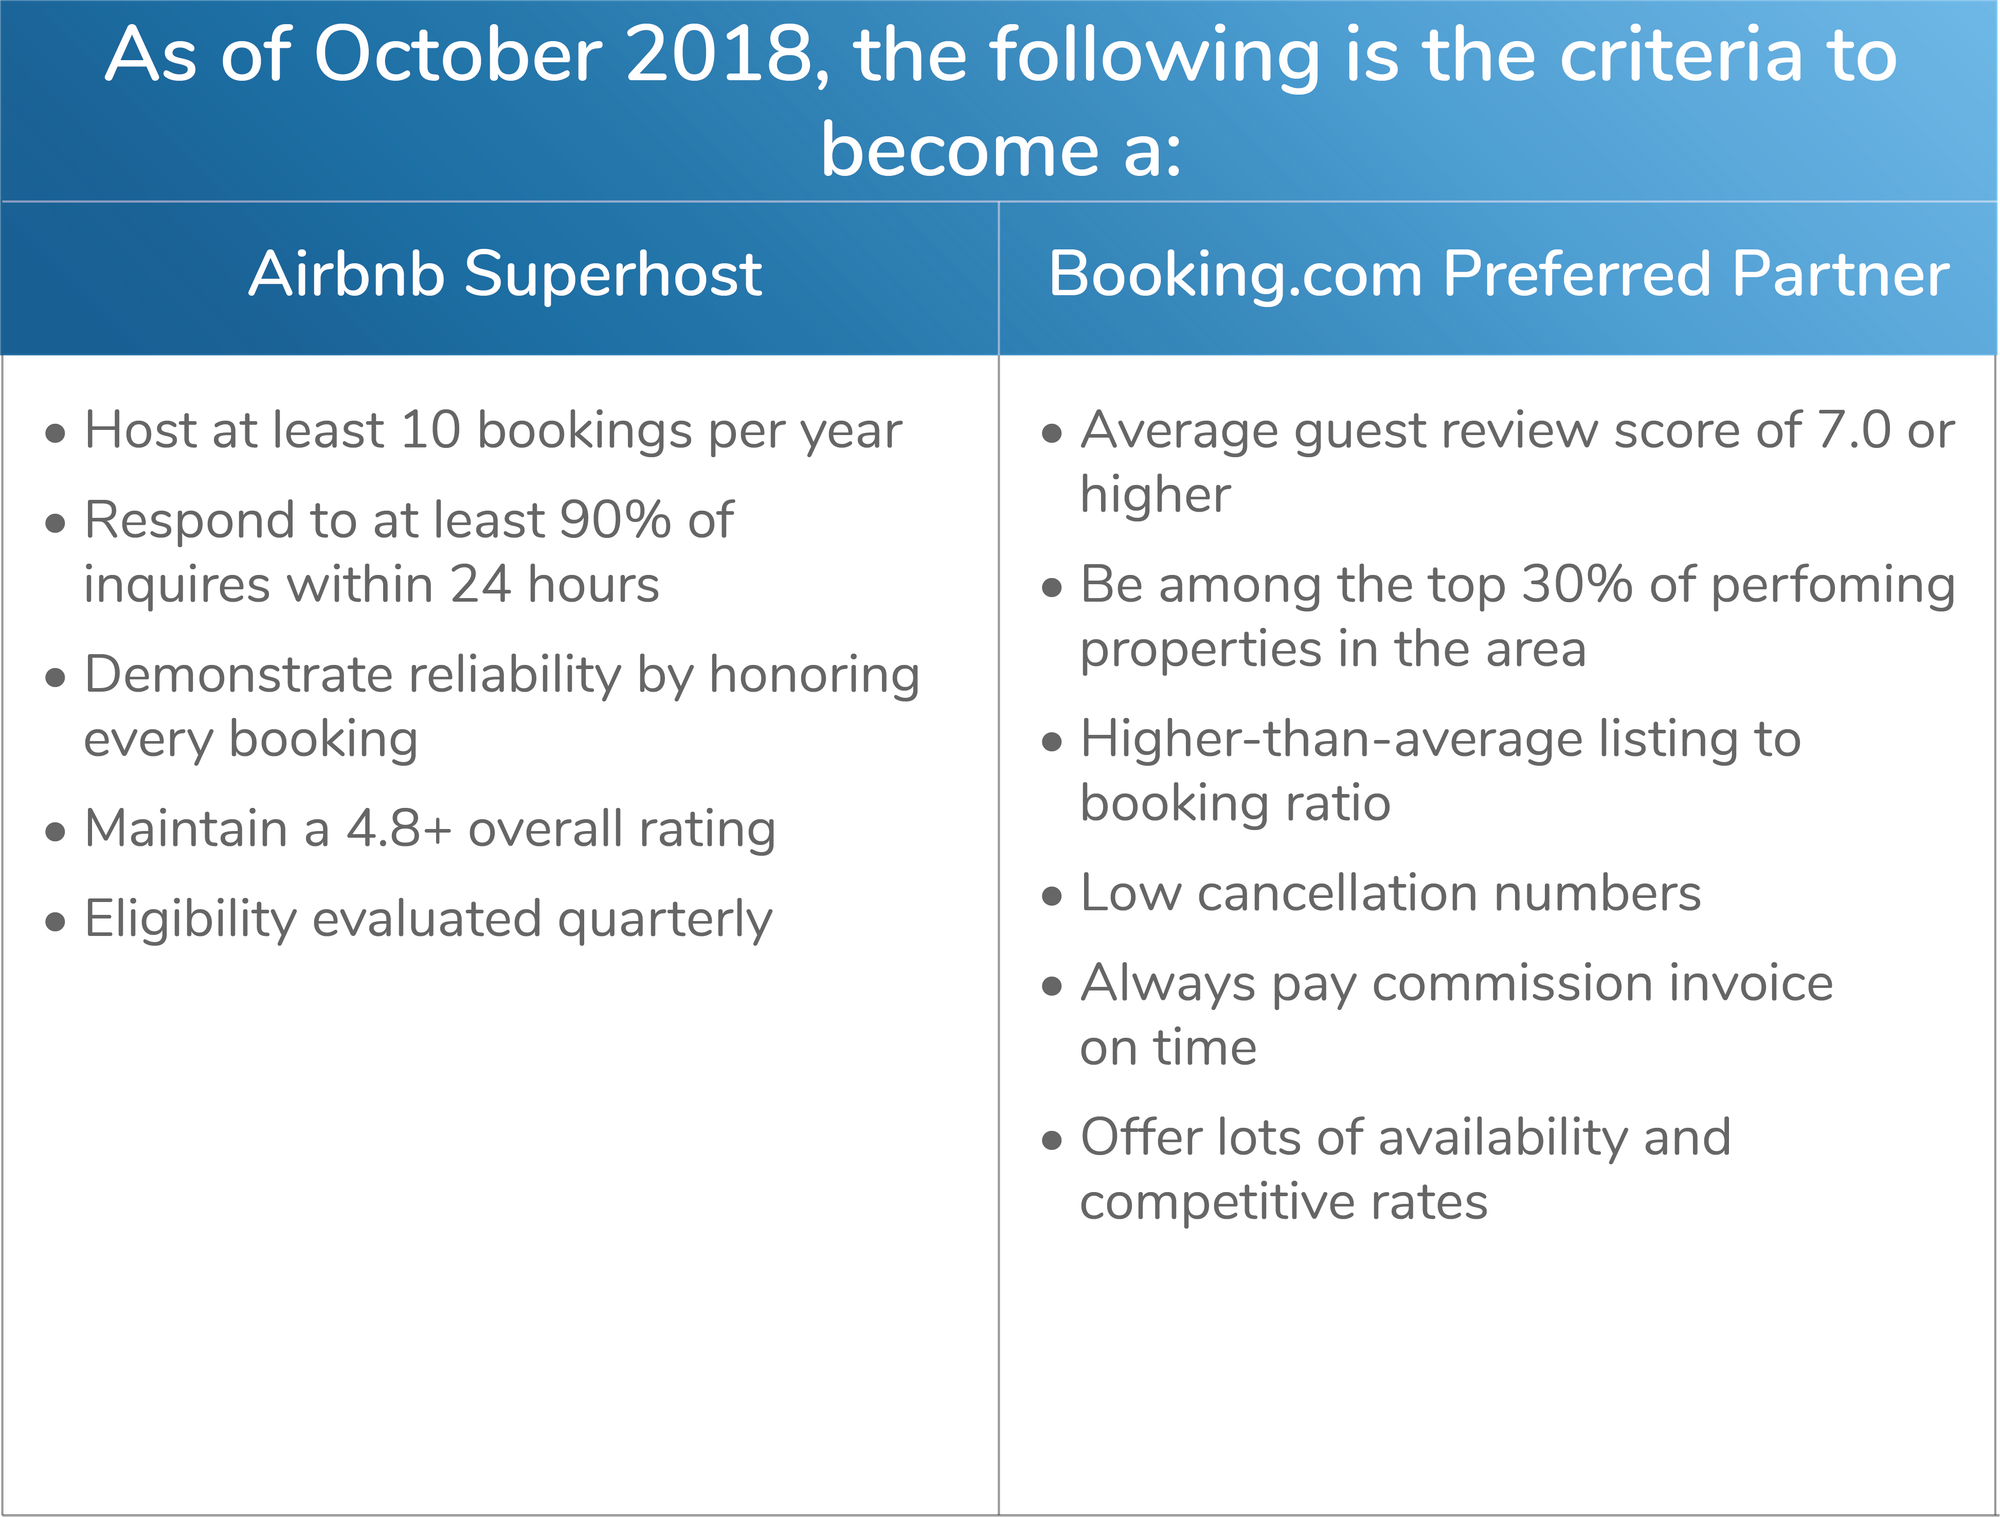 What's better Airbnb or Booking.com? Superhost vs. Preferred Partner?